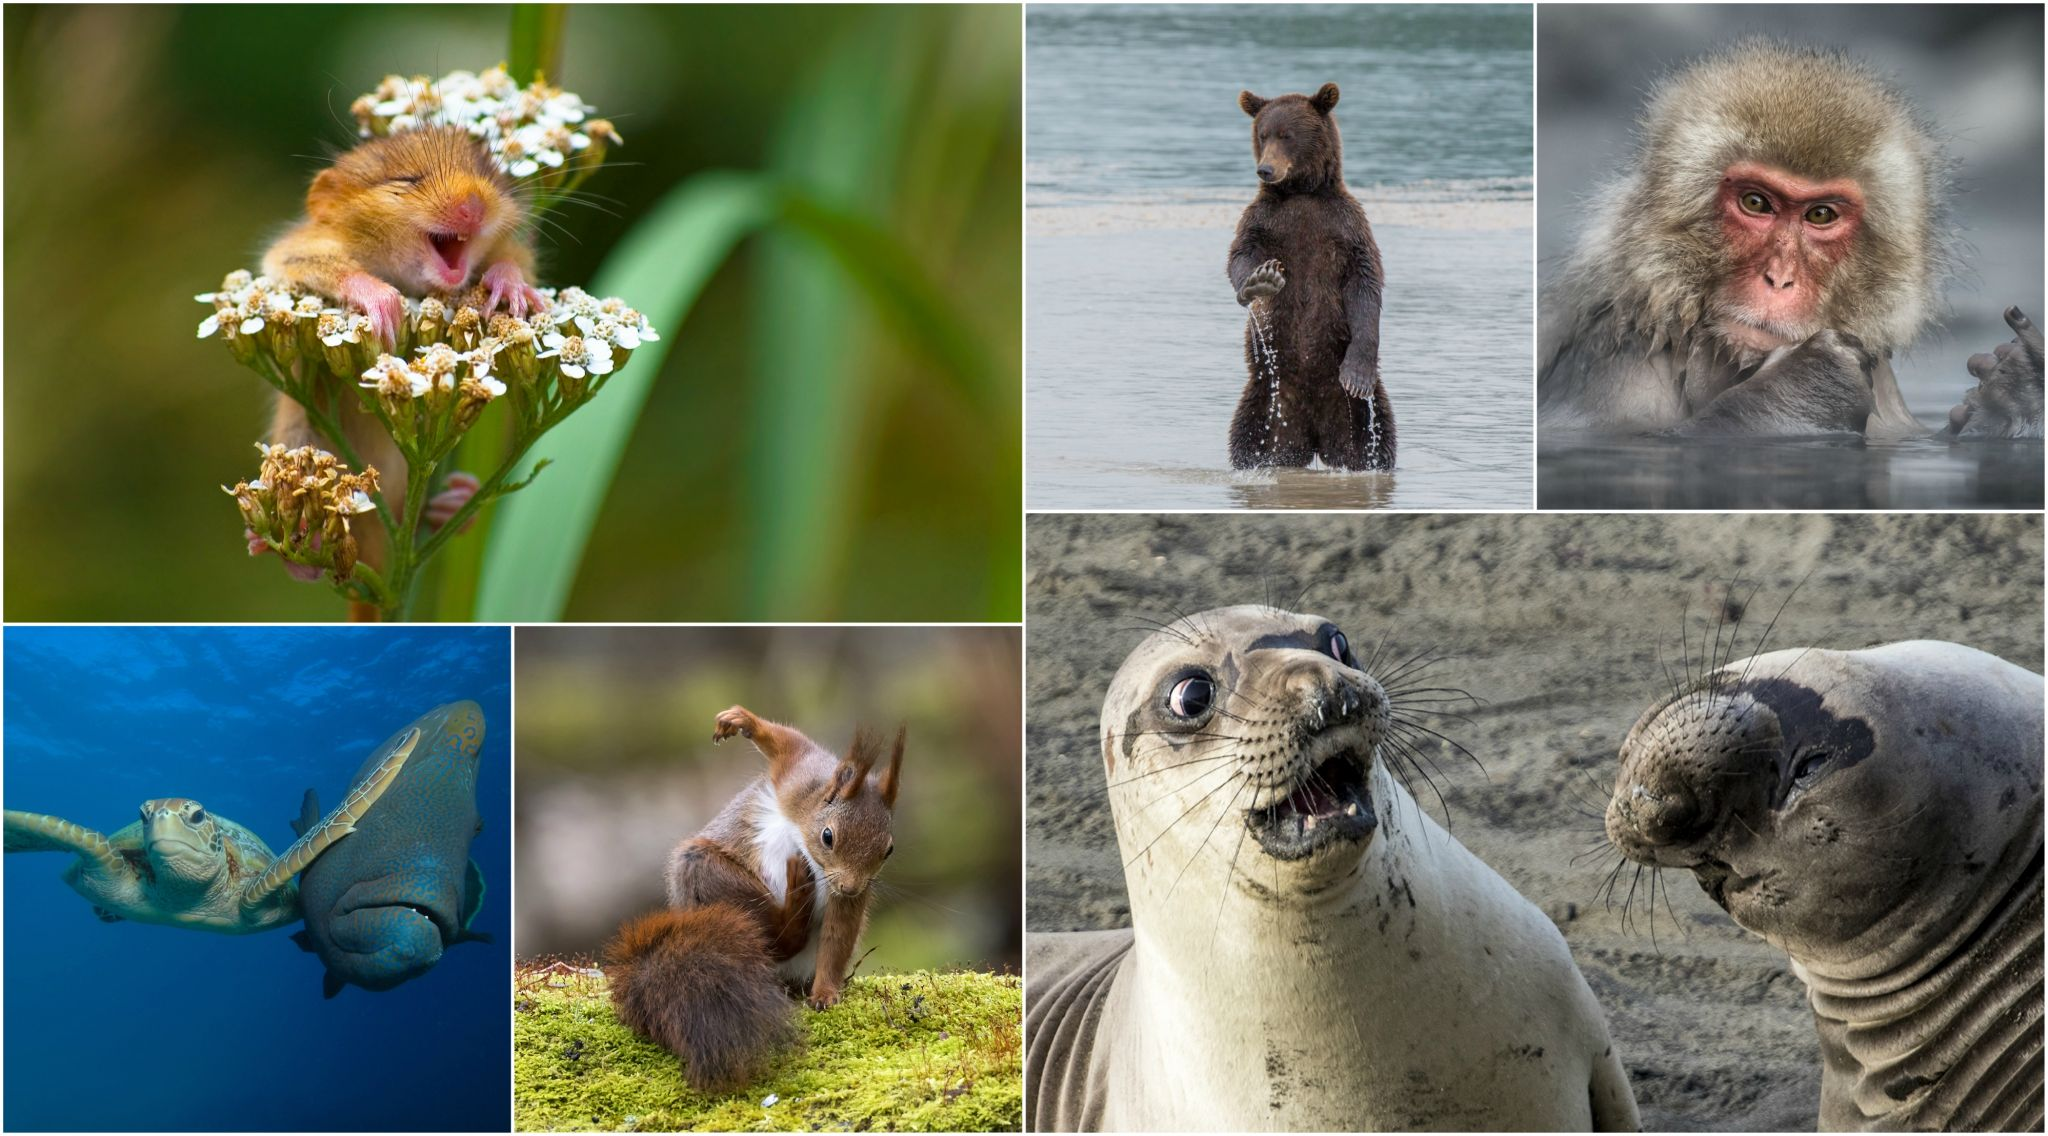 The World's Funniest And Cutest Animal Photos From 2017